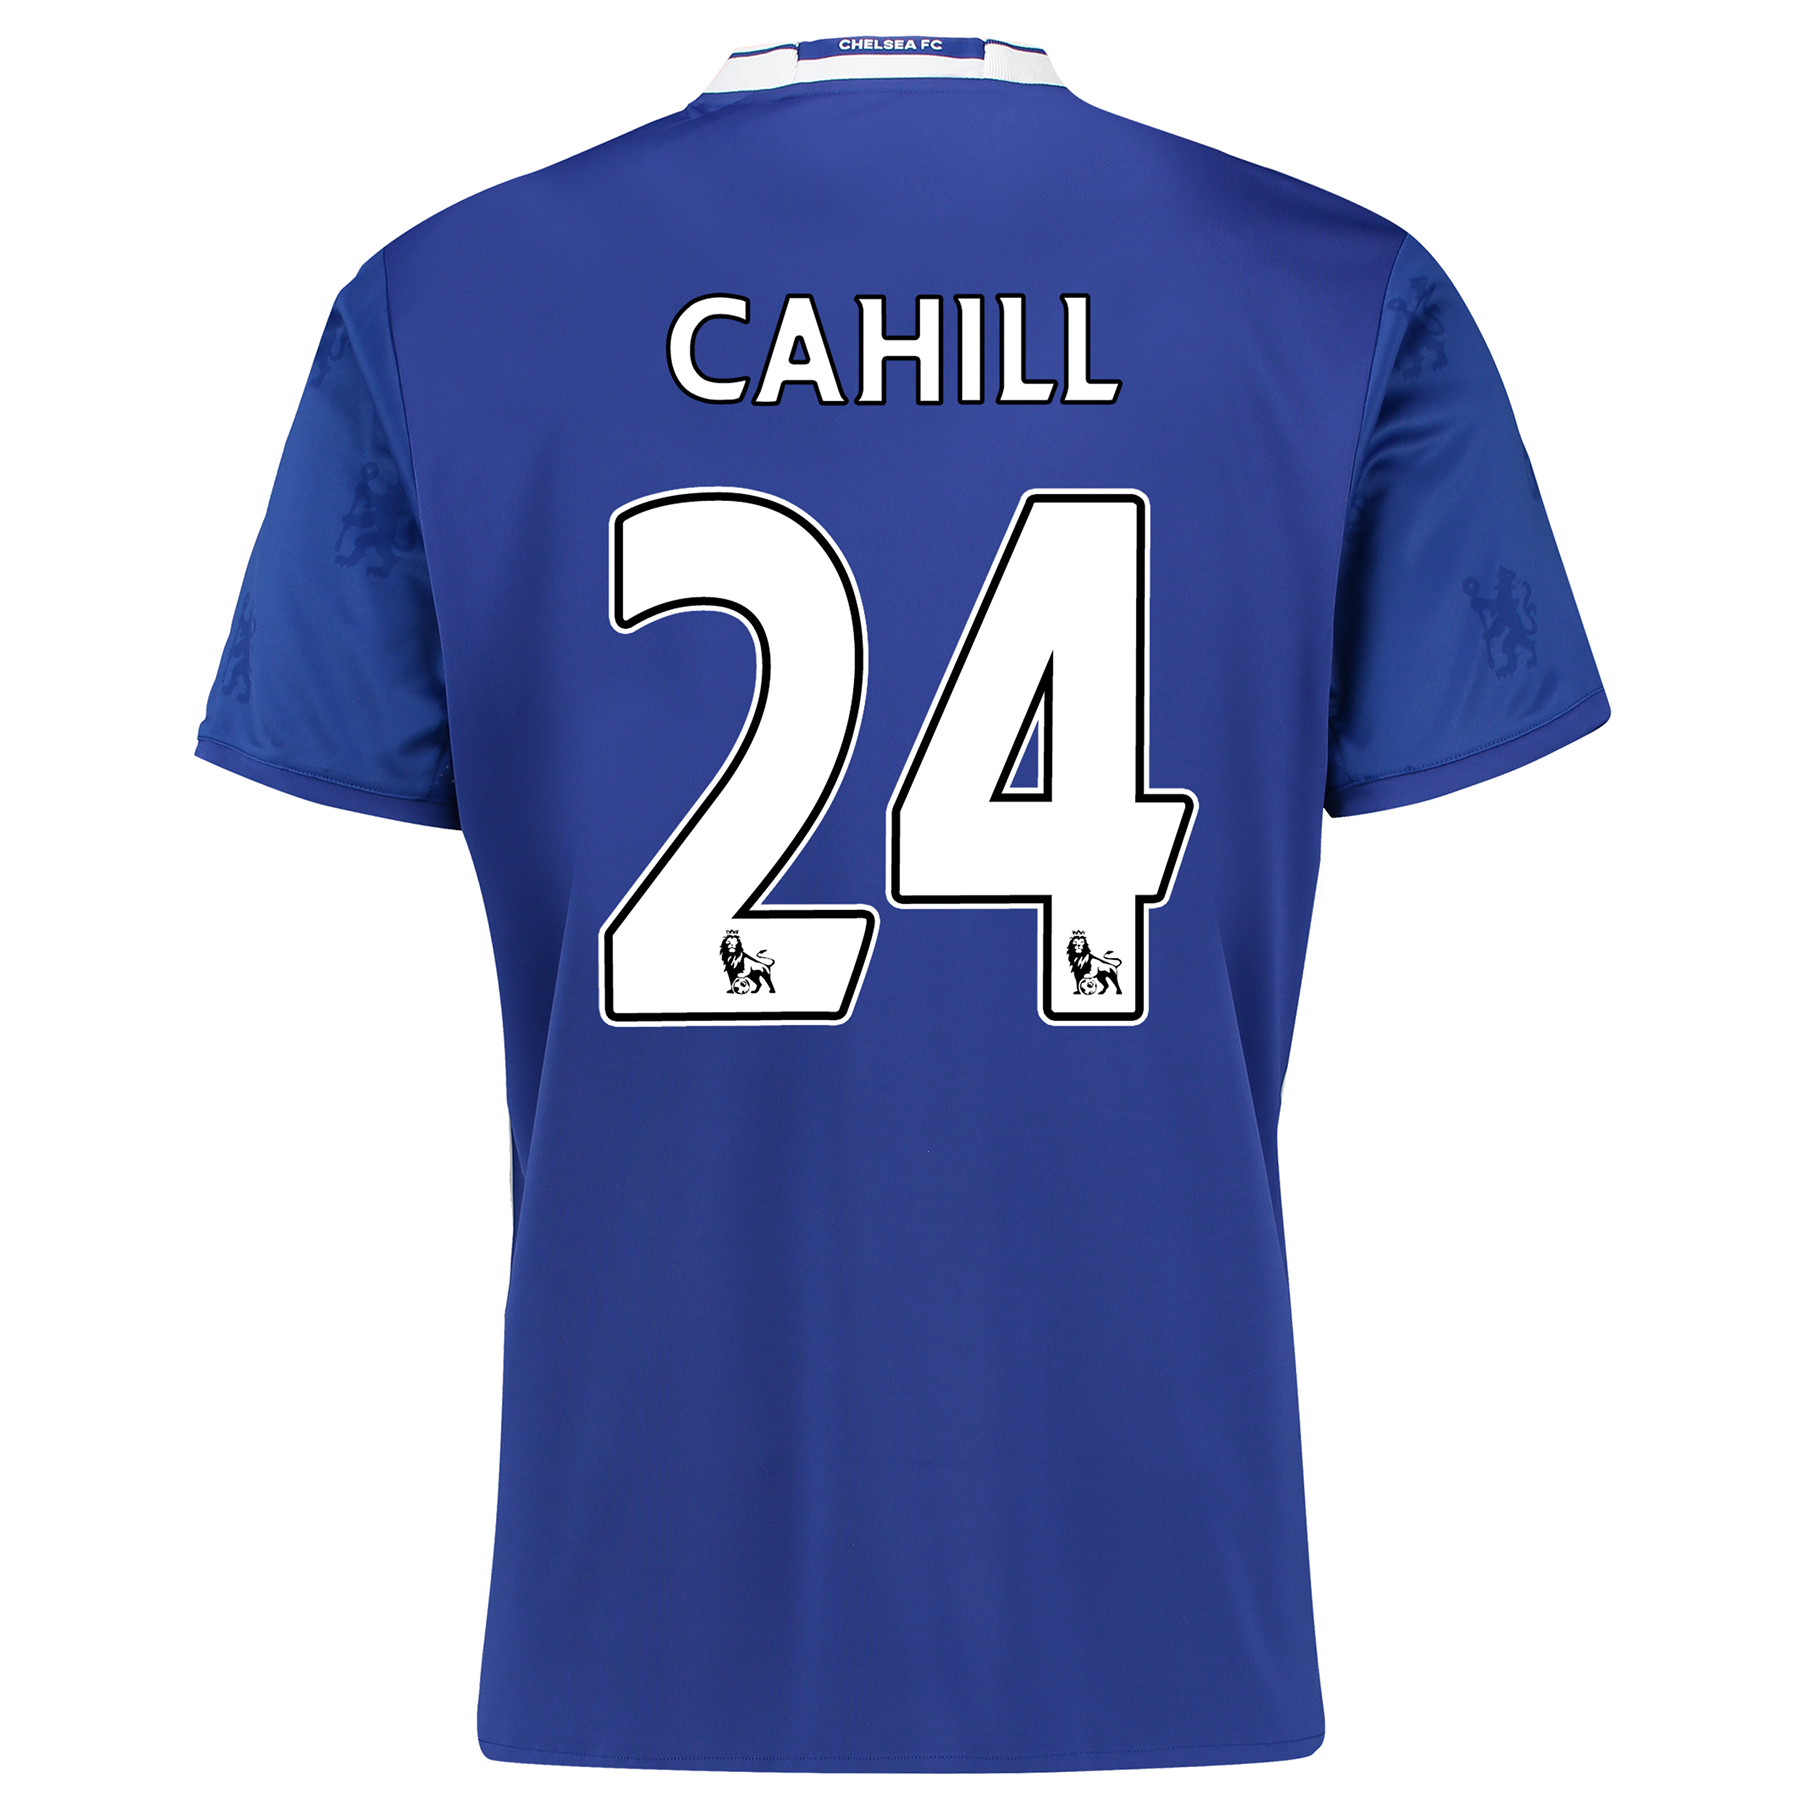 Chelsea Home Shirt 2016-17 with Cahill 24 printing